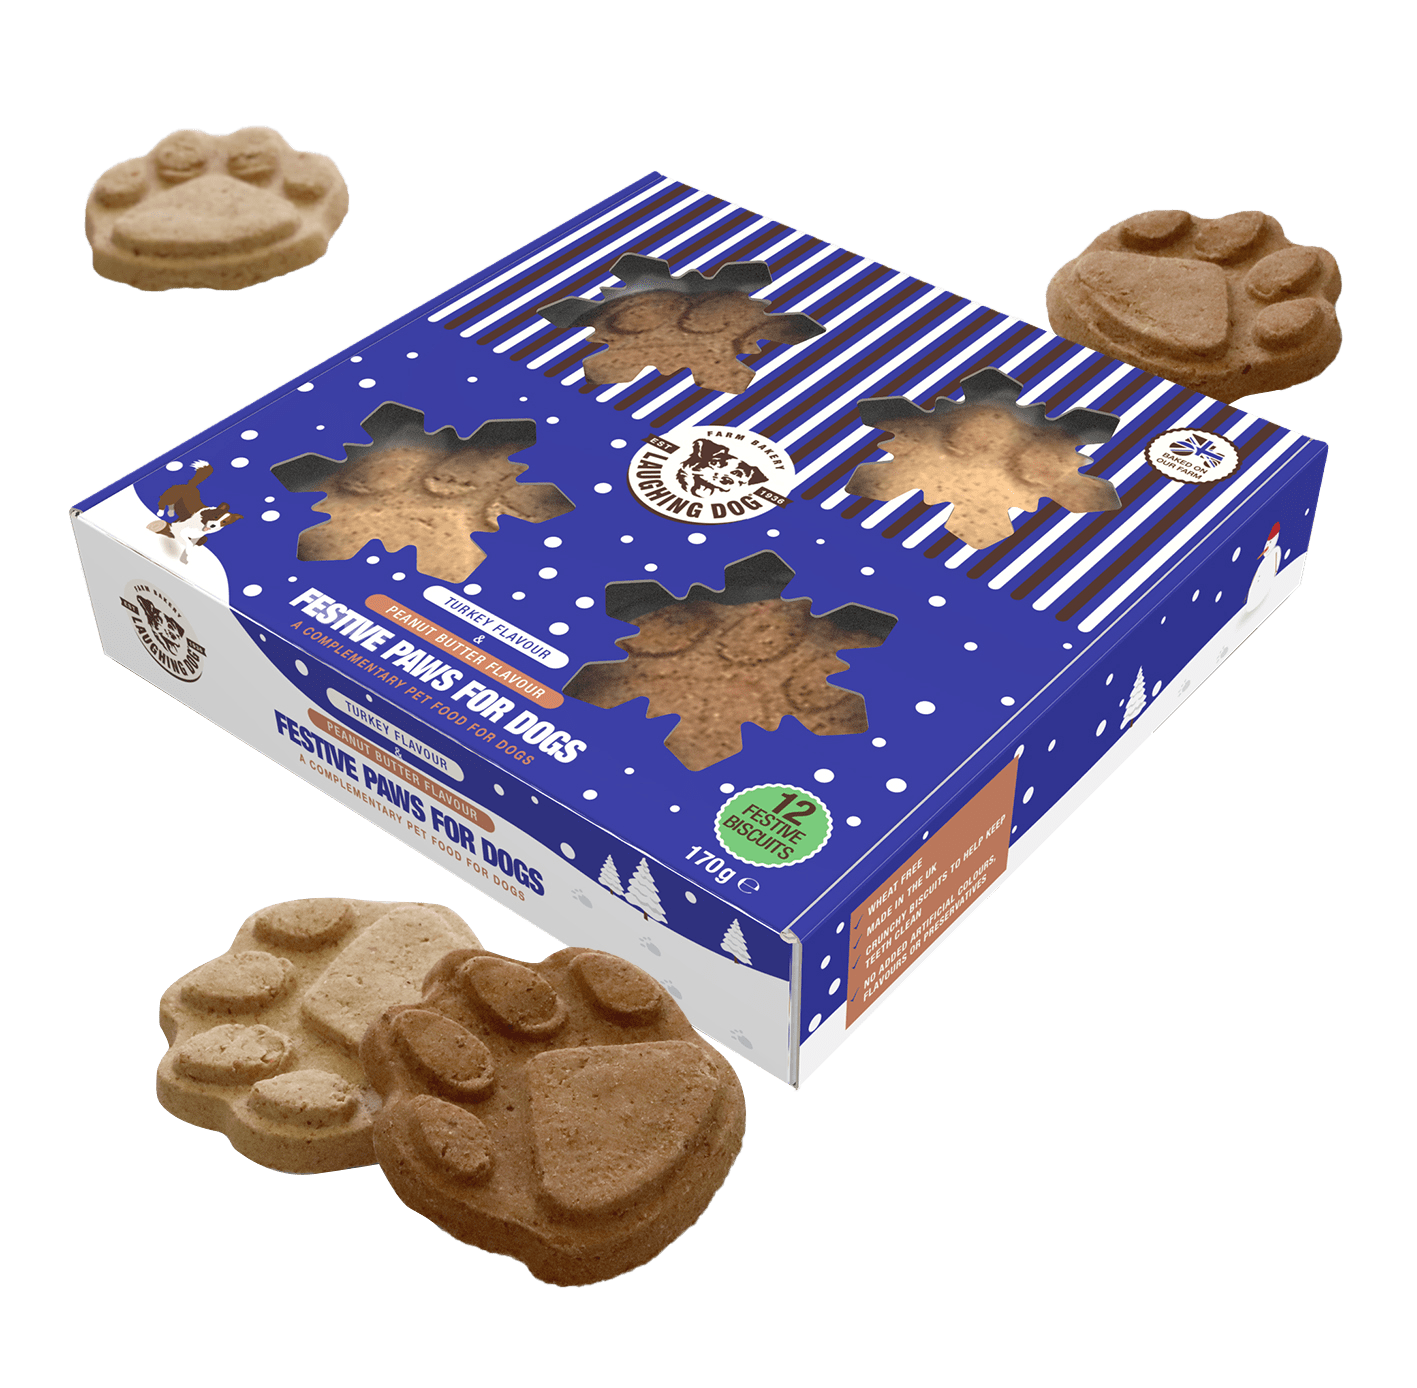 Christmas presents for dogs - Christmas dog gifts from Laughing Dog